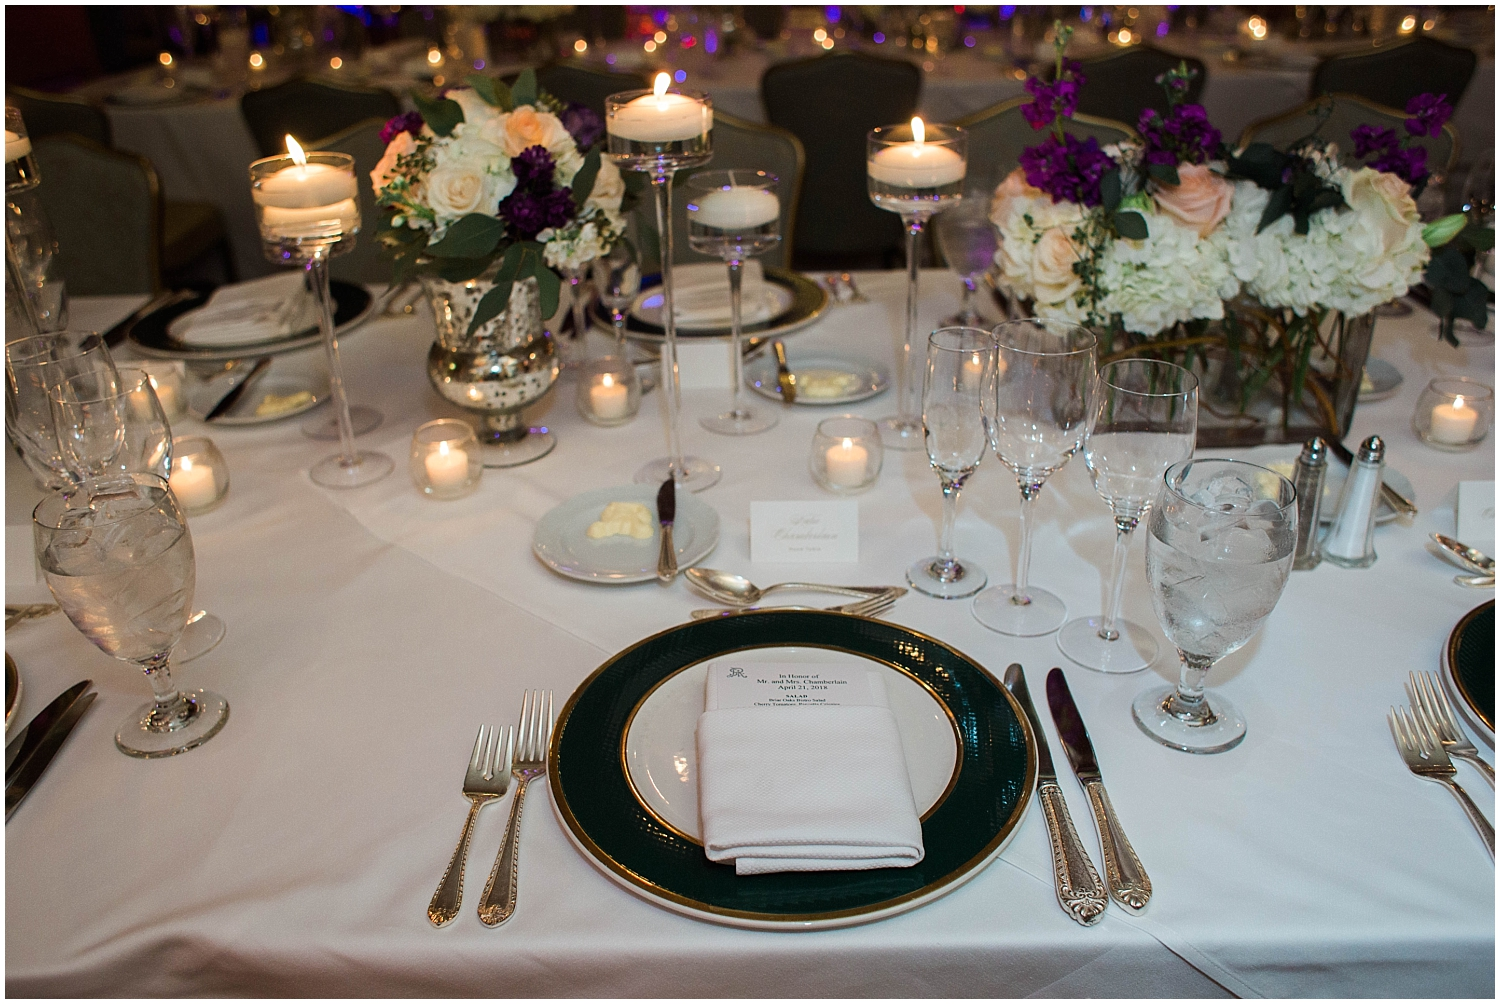 wedding reception table setting with candles and floral decor